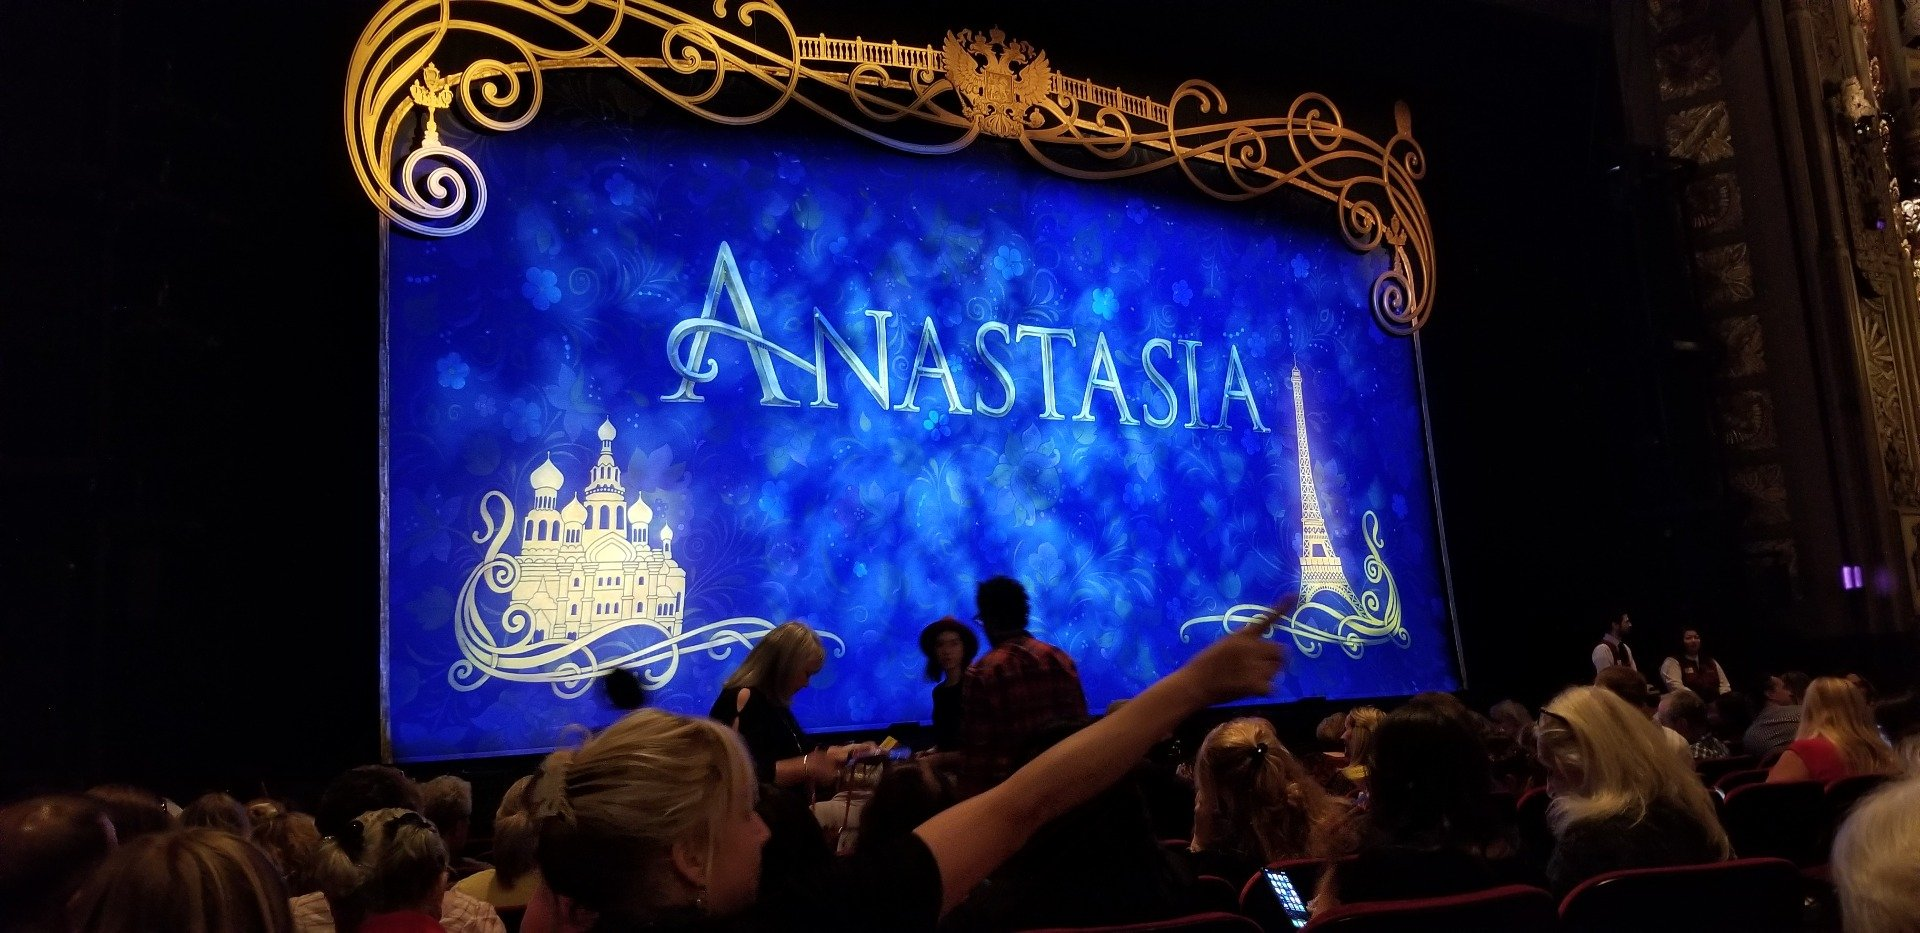 Hollywood Pantages Theatre Section Orchestra LC Row K Seat 306